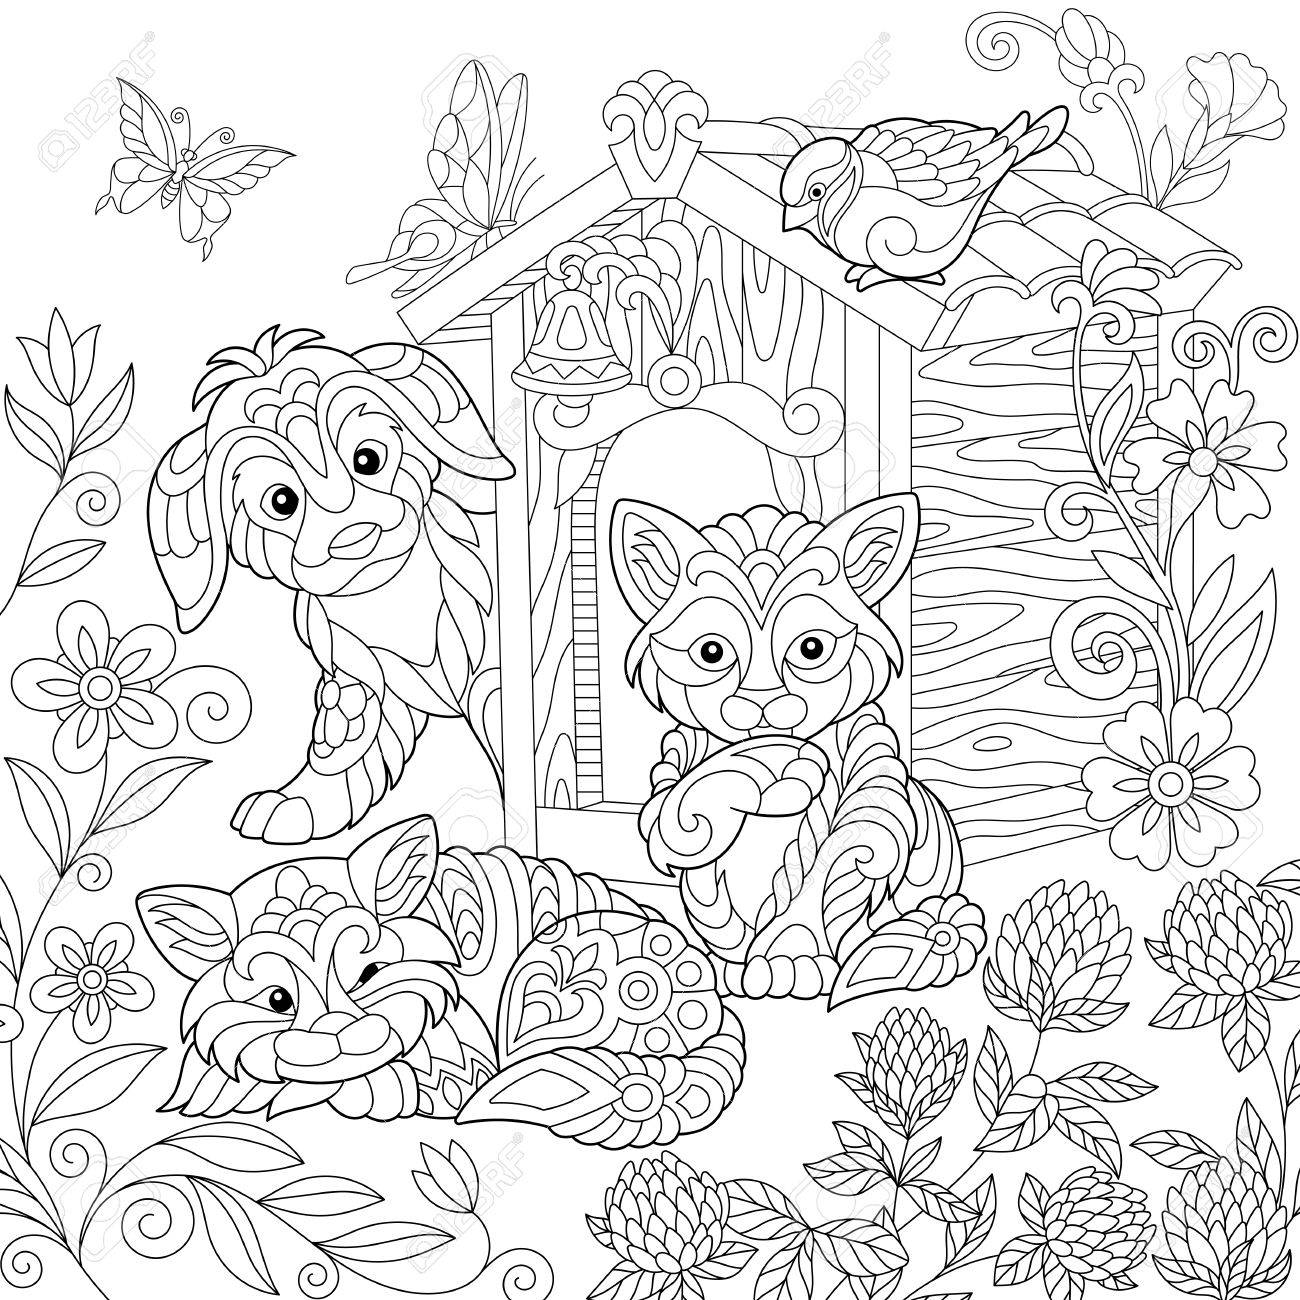 1300x1300 Coloring Page Of Puppy, Cat, Sparrow Bird, Dog Booth, Clover